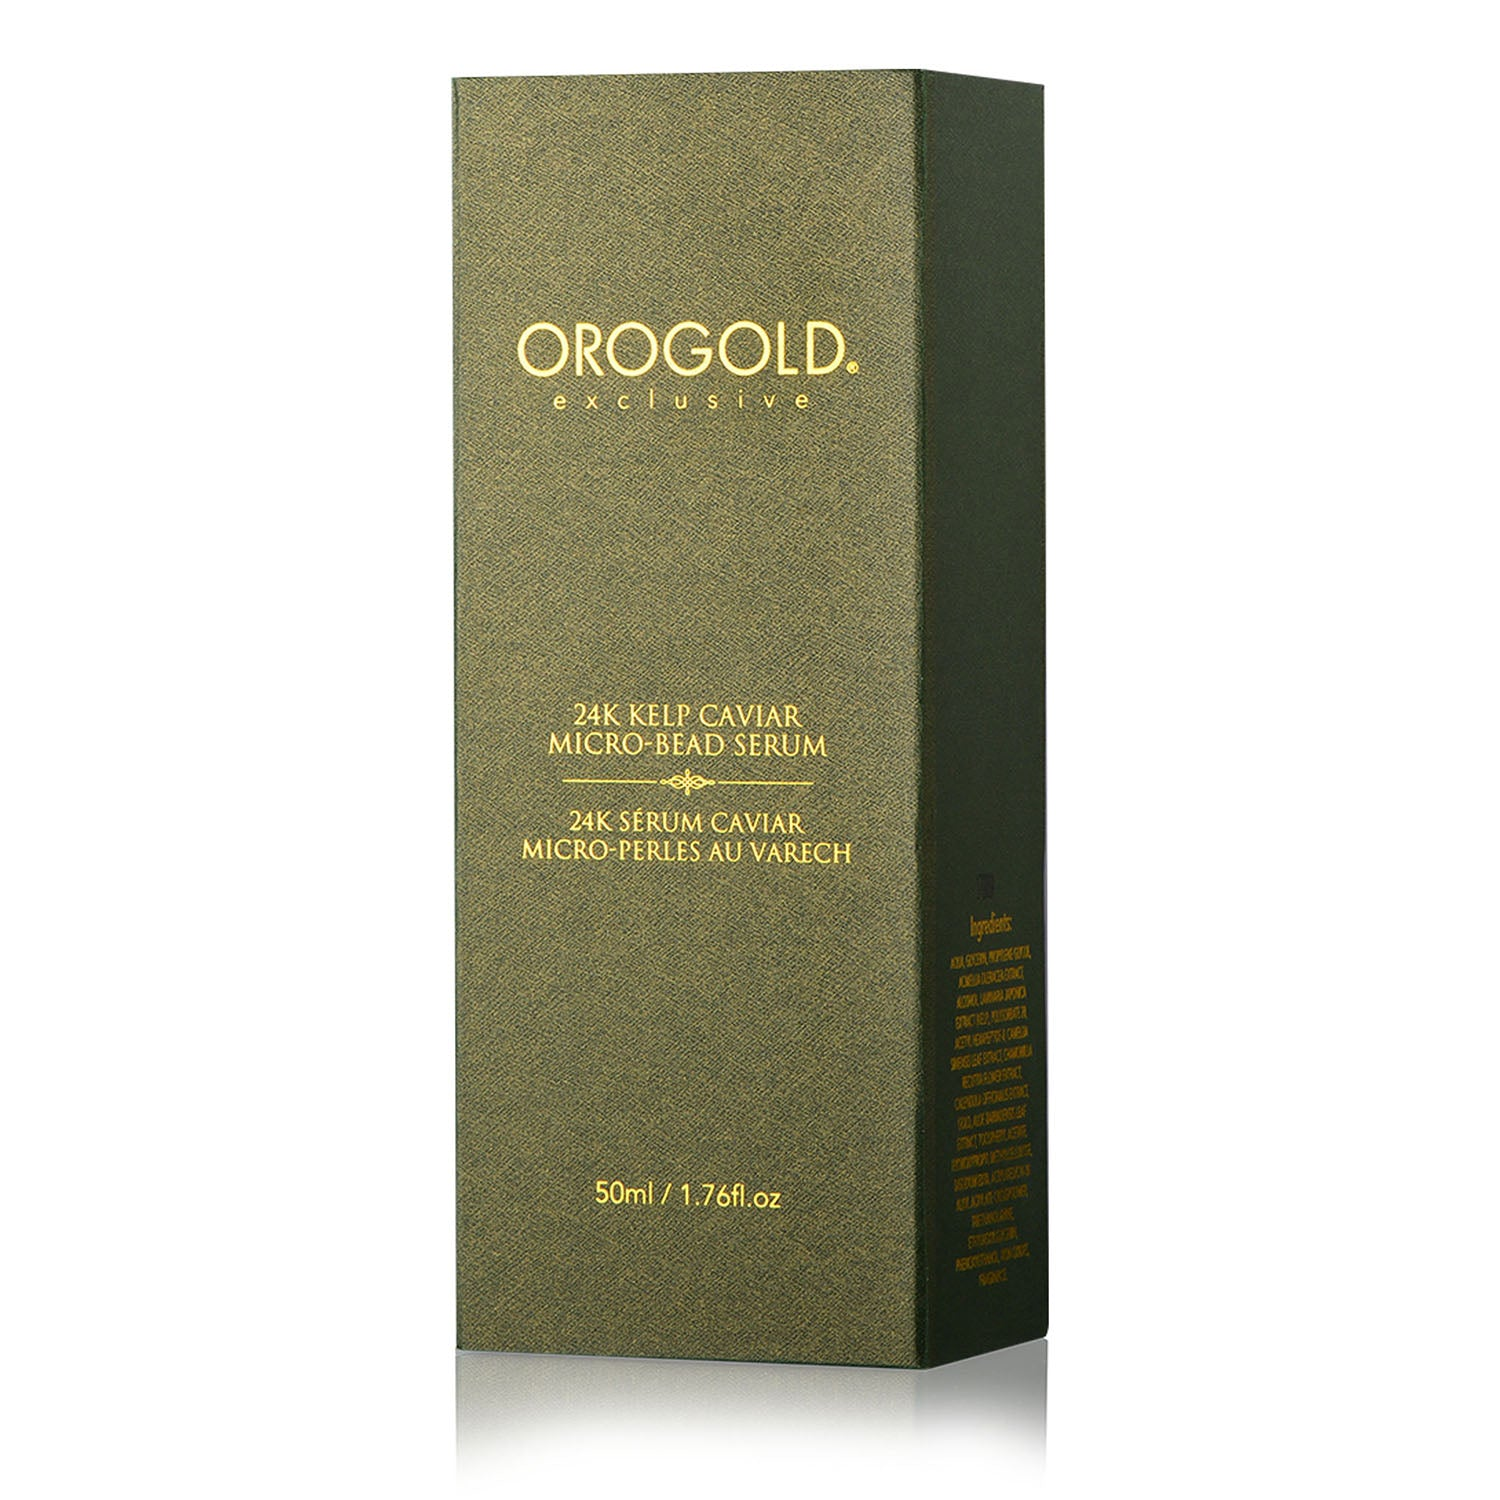 orogold micro-beads face serum